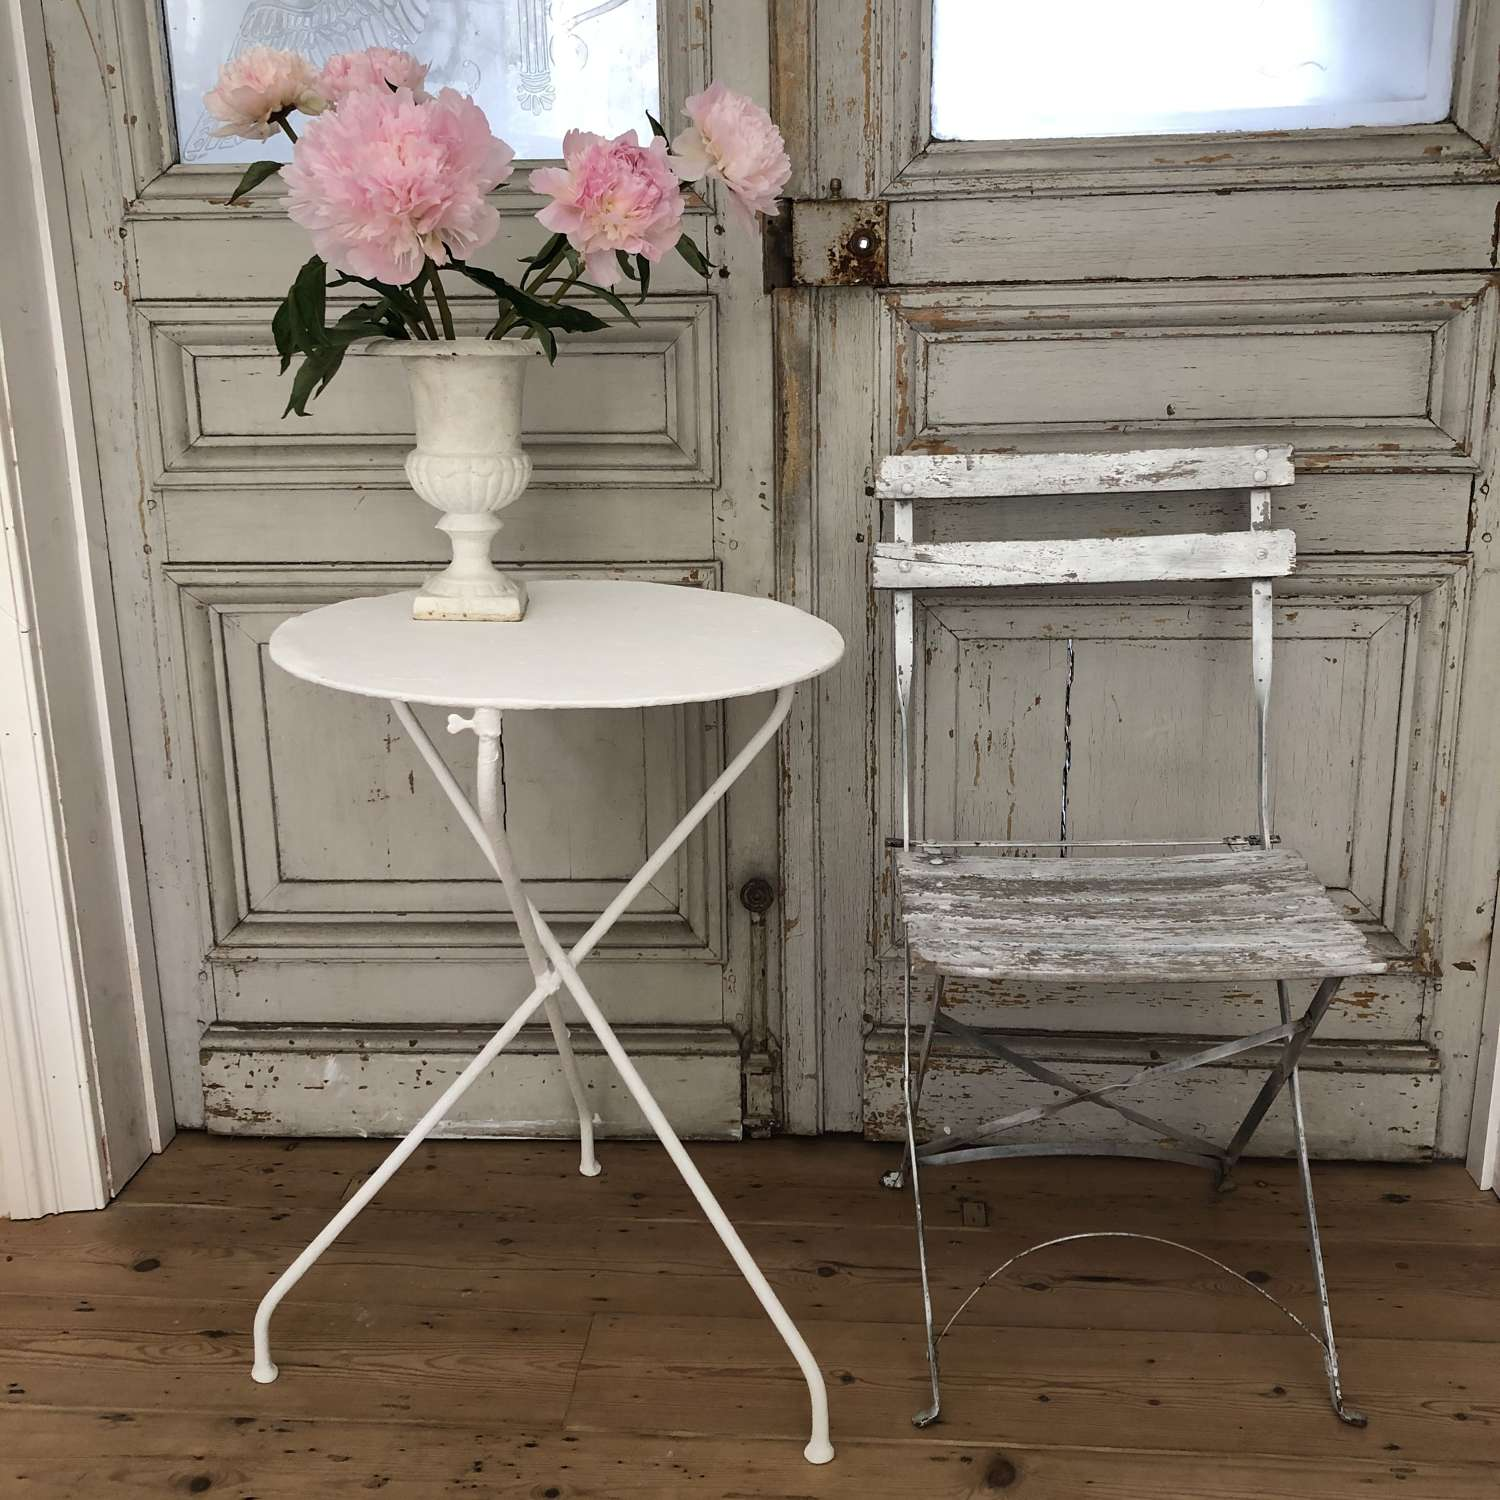 Antique French bistro table and chair